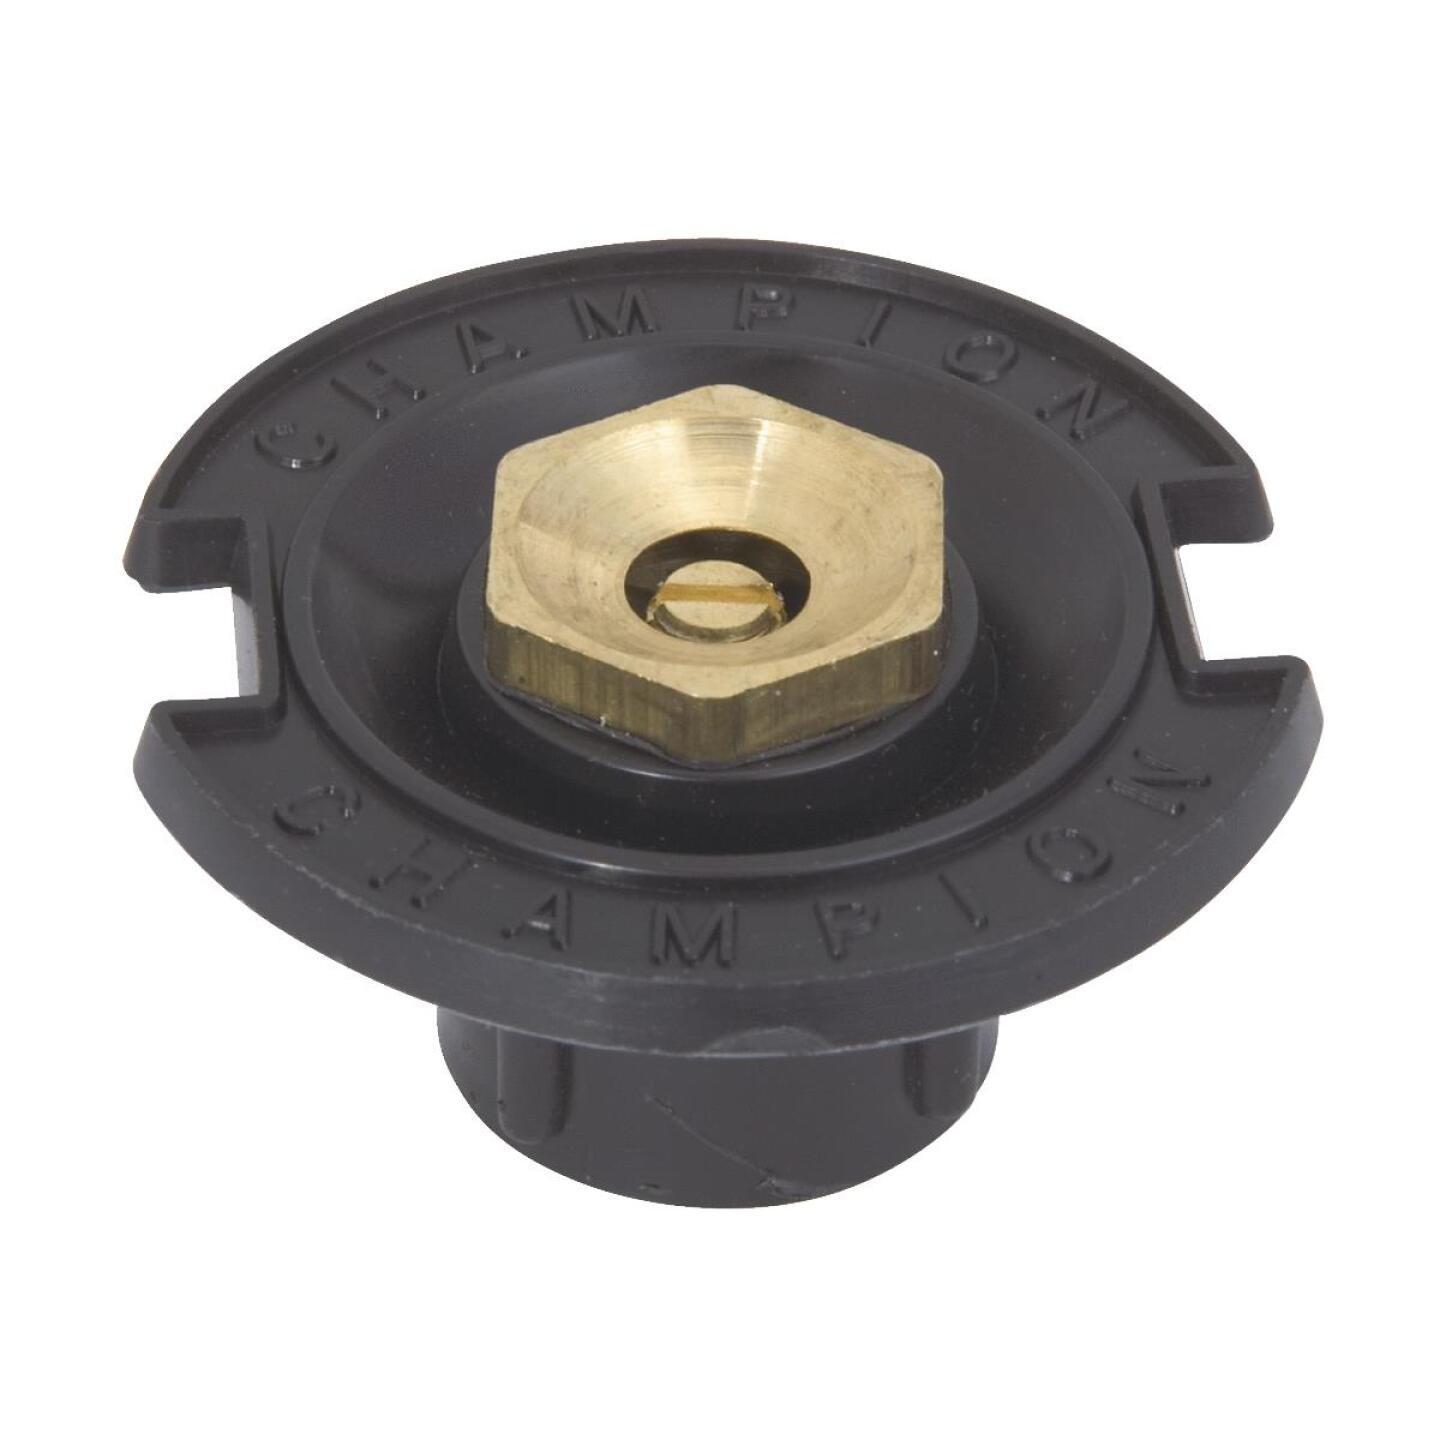 Champion Half Circle 1/2 In. FPT Deluxe Plastic Flush Head Sprinkler with Brass Nozzle Image 1